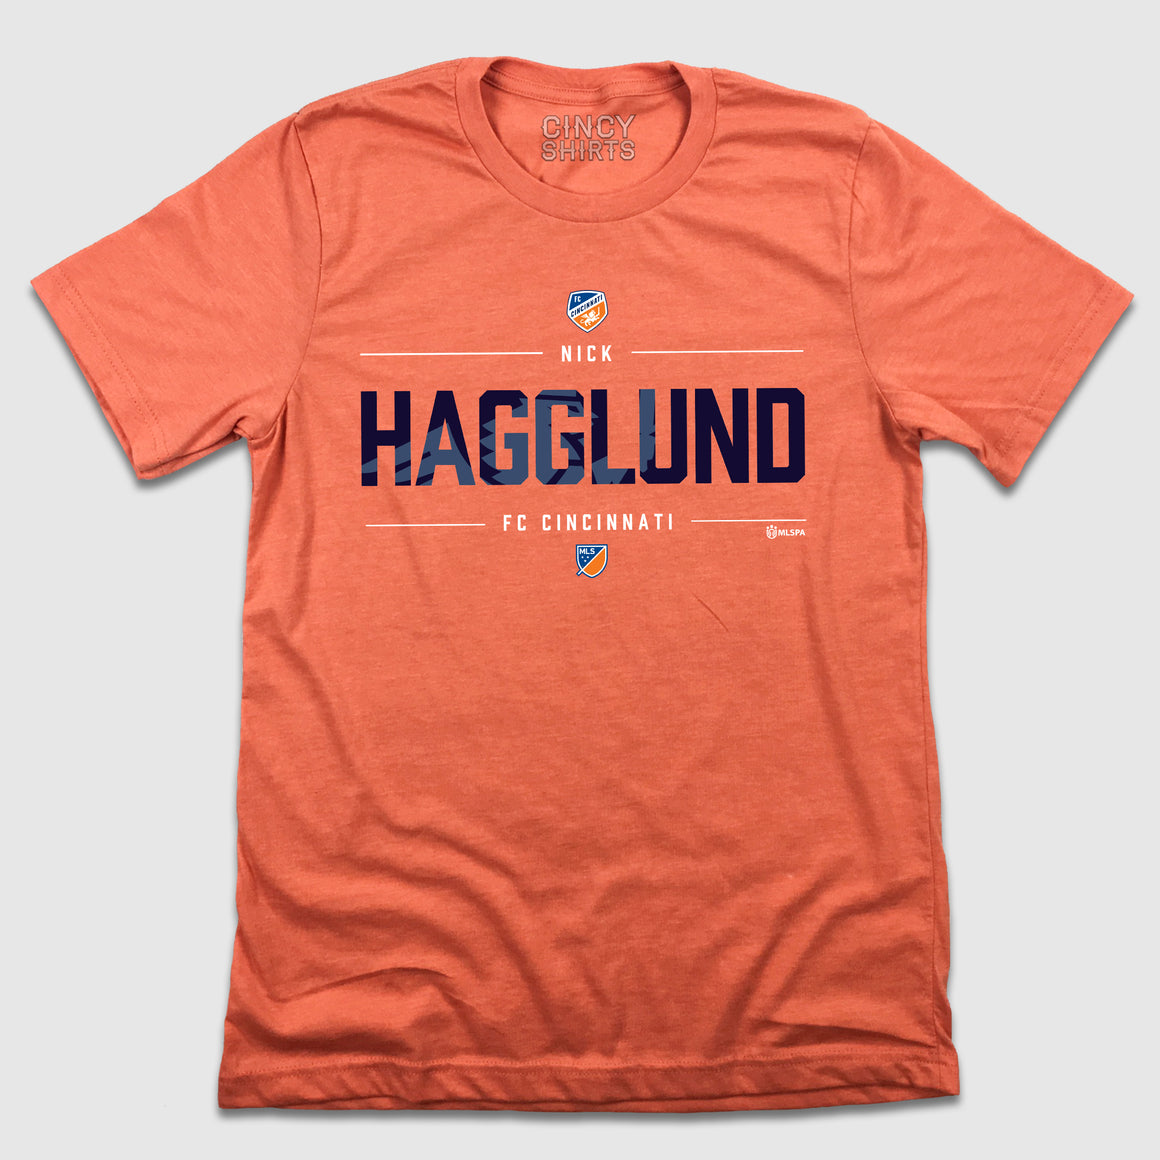 Nick Hagglund MLS FC Cincinnati T-shirt